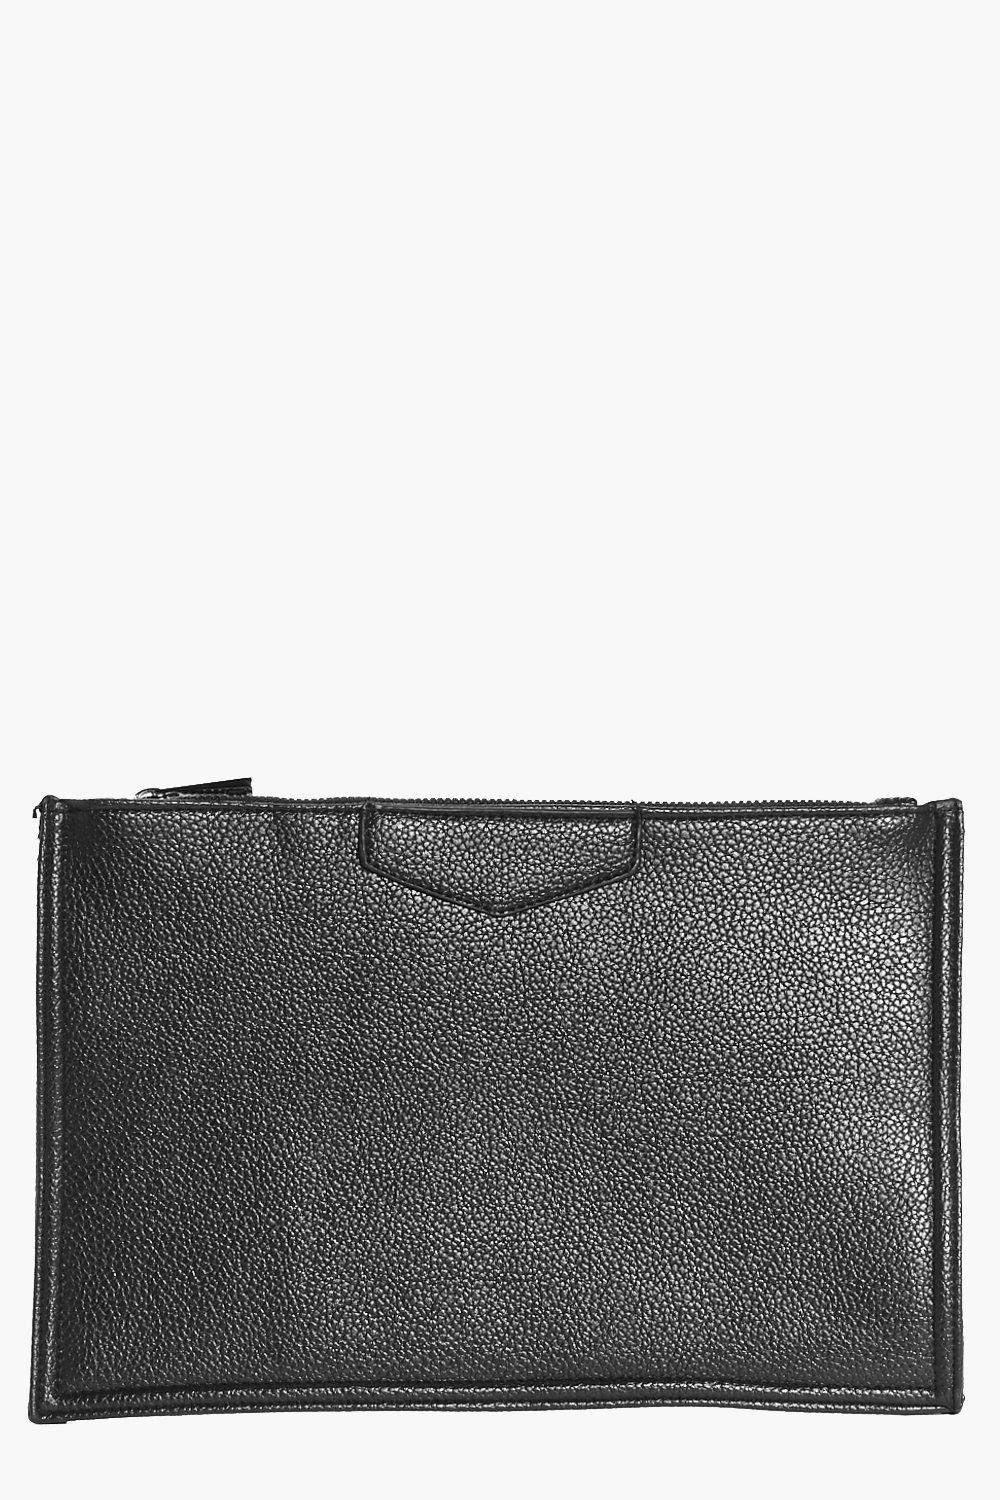 Evie Tab Detail Travel Pouch Clutch Bag